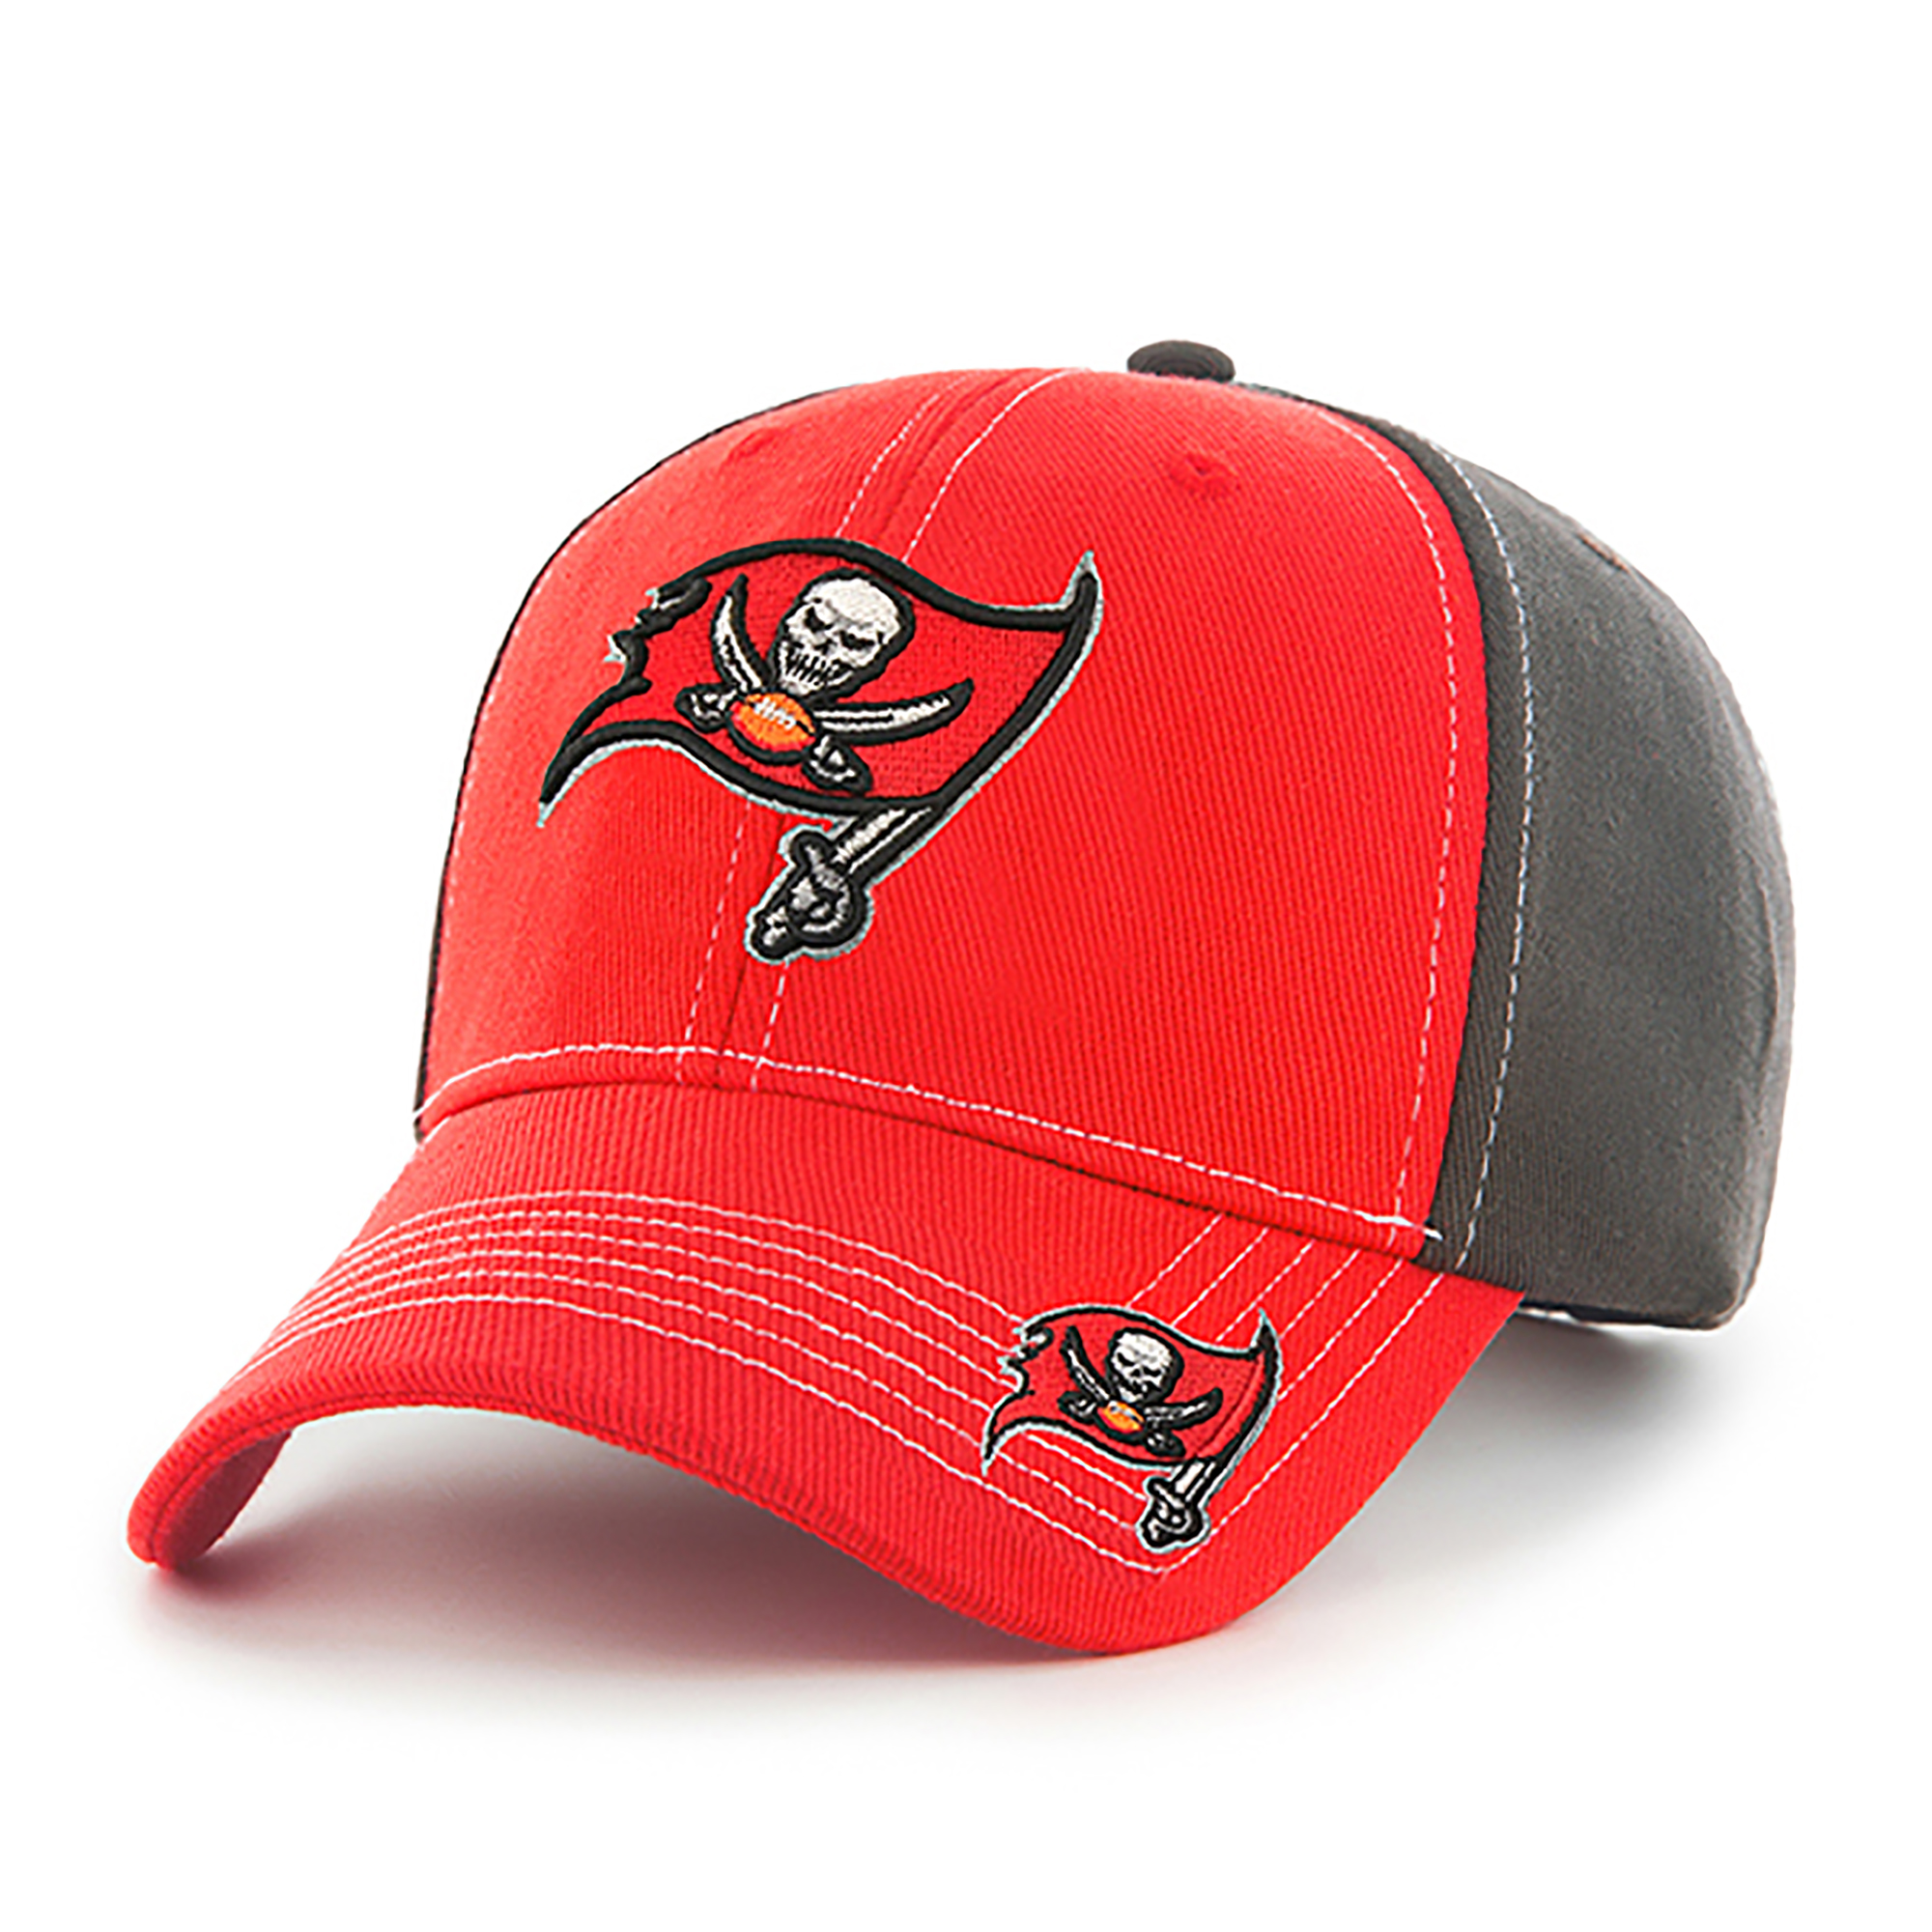 NFL Tampa Bay Buccaneers Mass Revolver Cap - Fan Favorite